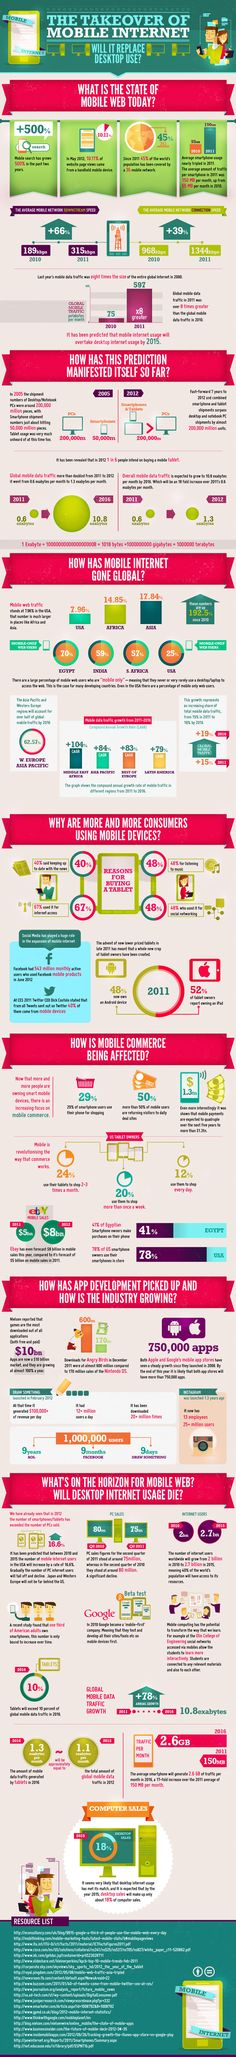 The takeover of mobile internet. #infographic #internet #mobile